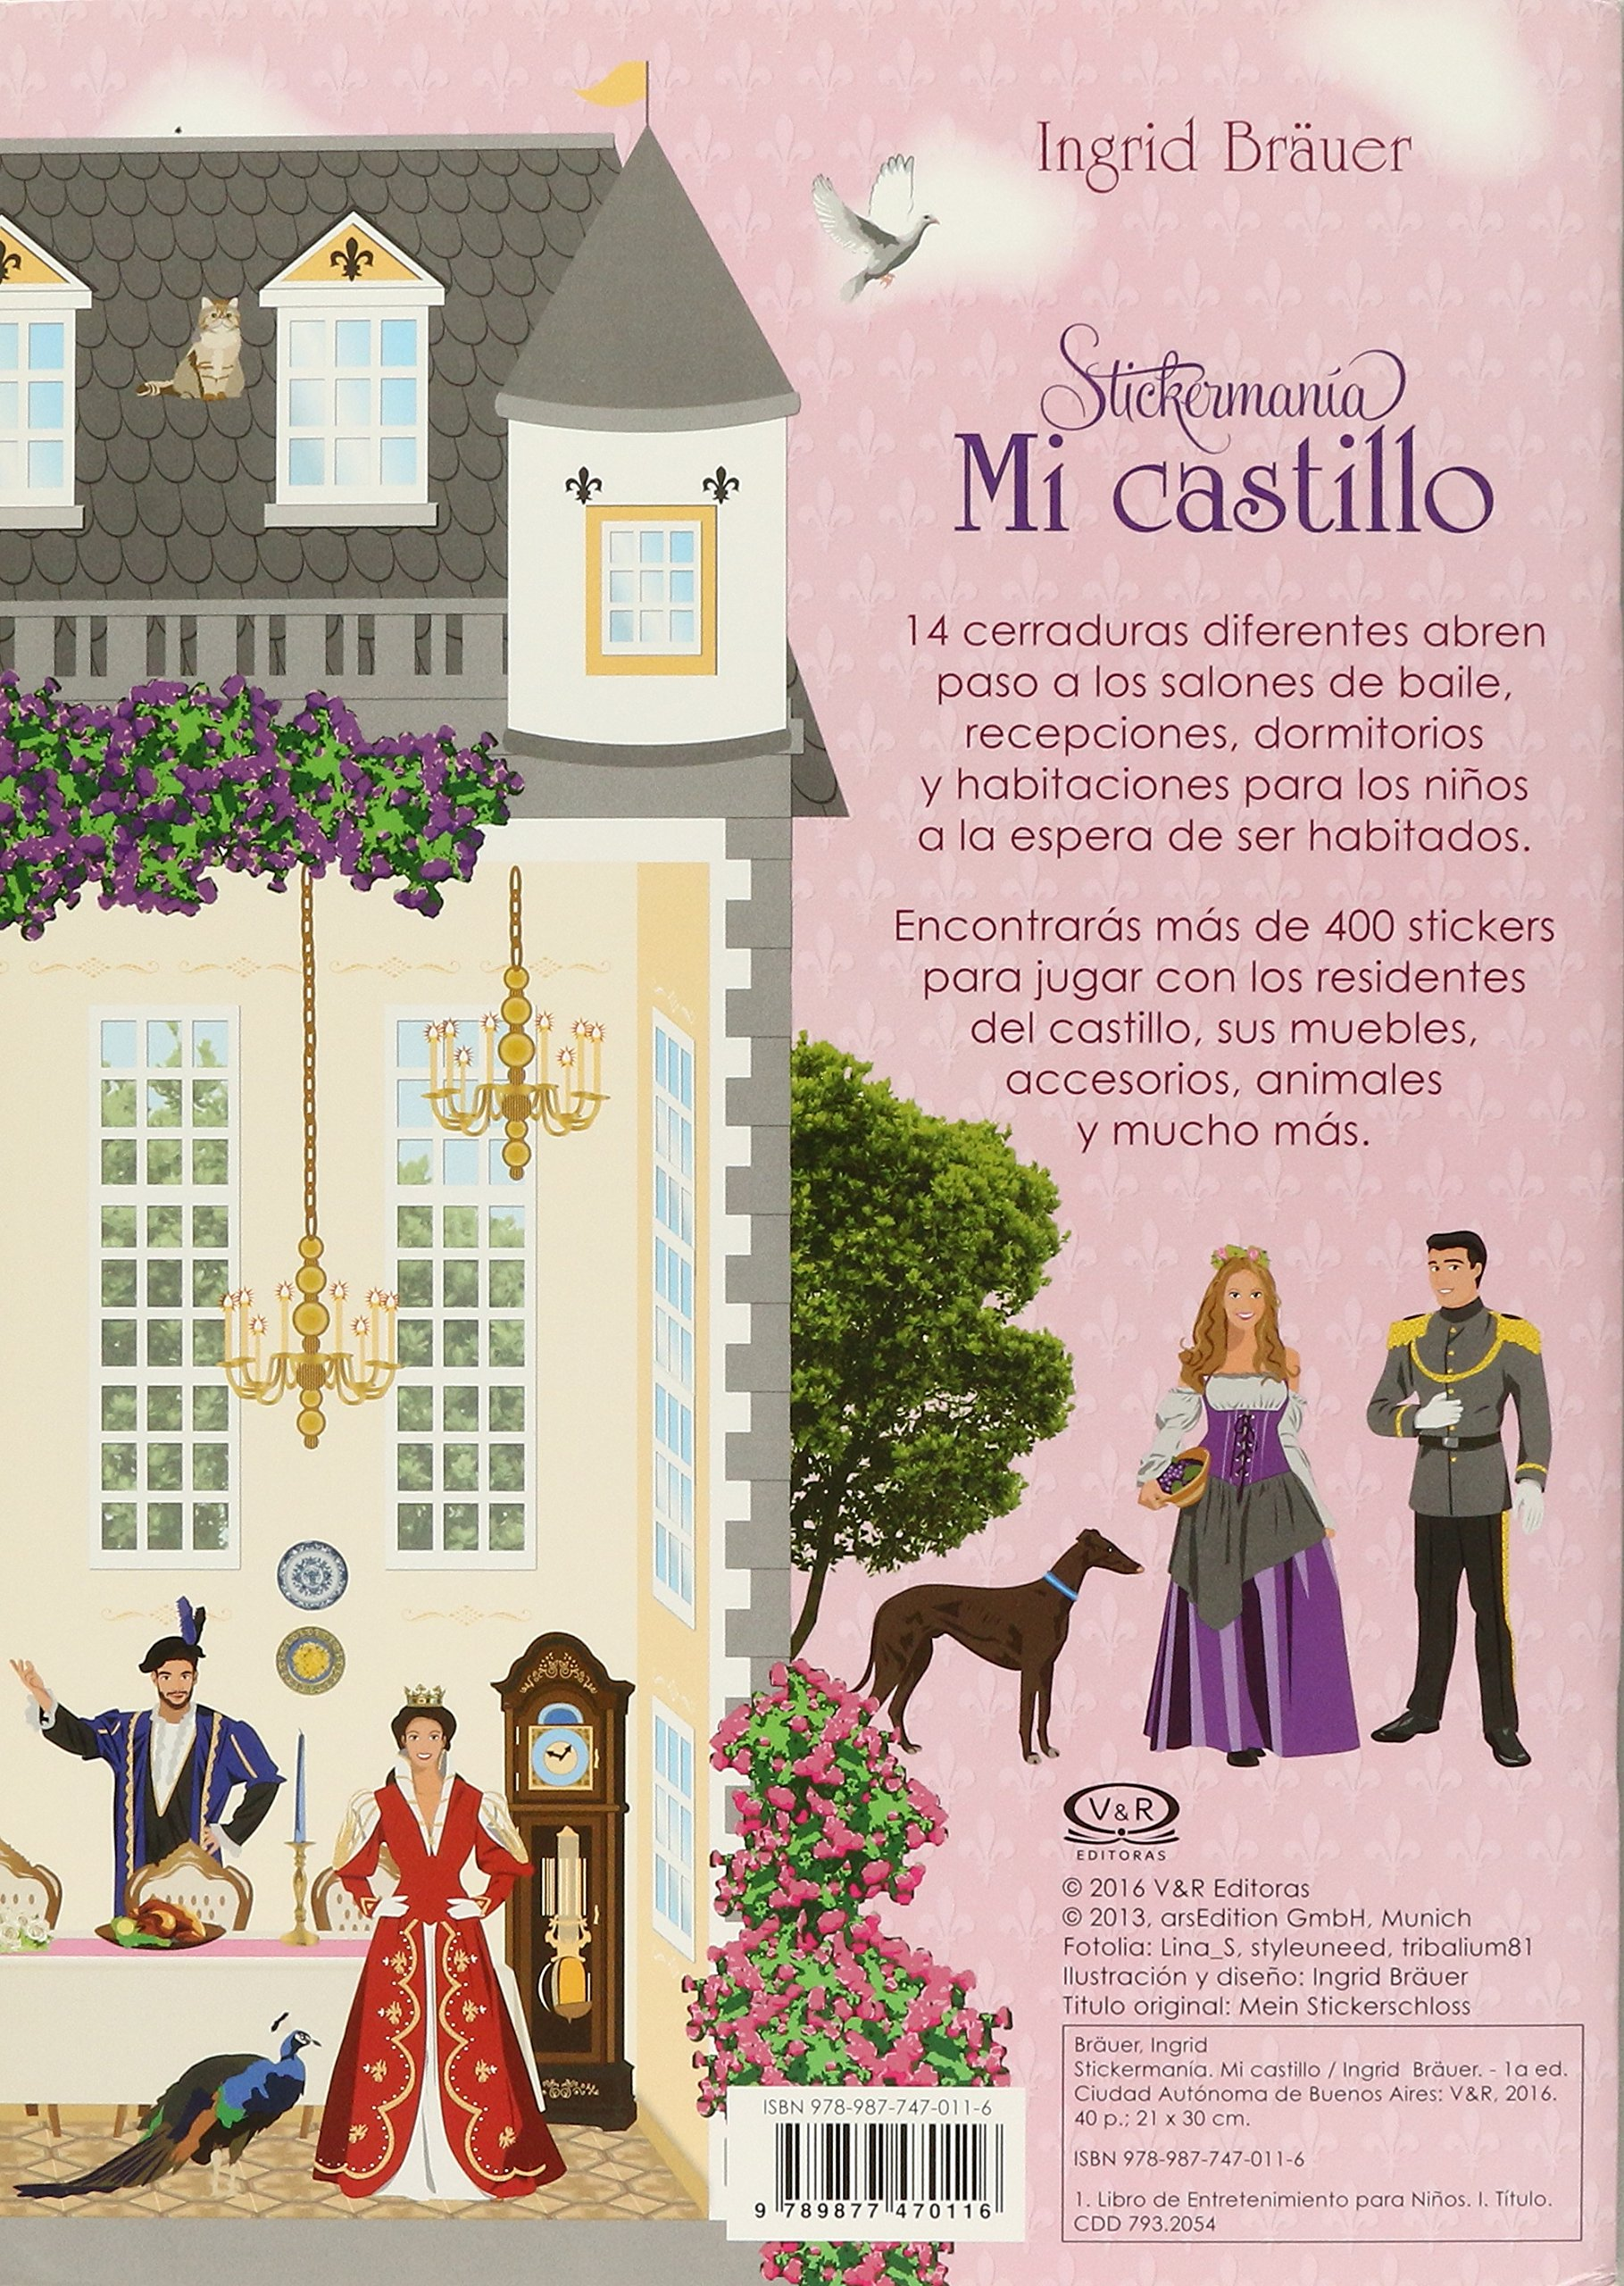 MI CASTILLO / STICKERMANIA: VERGARA & RIBA: 9789877470116: Amazon.com: Books